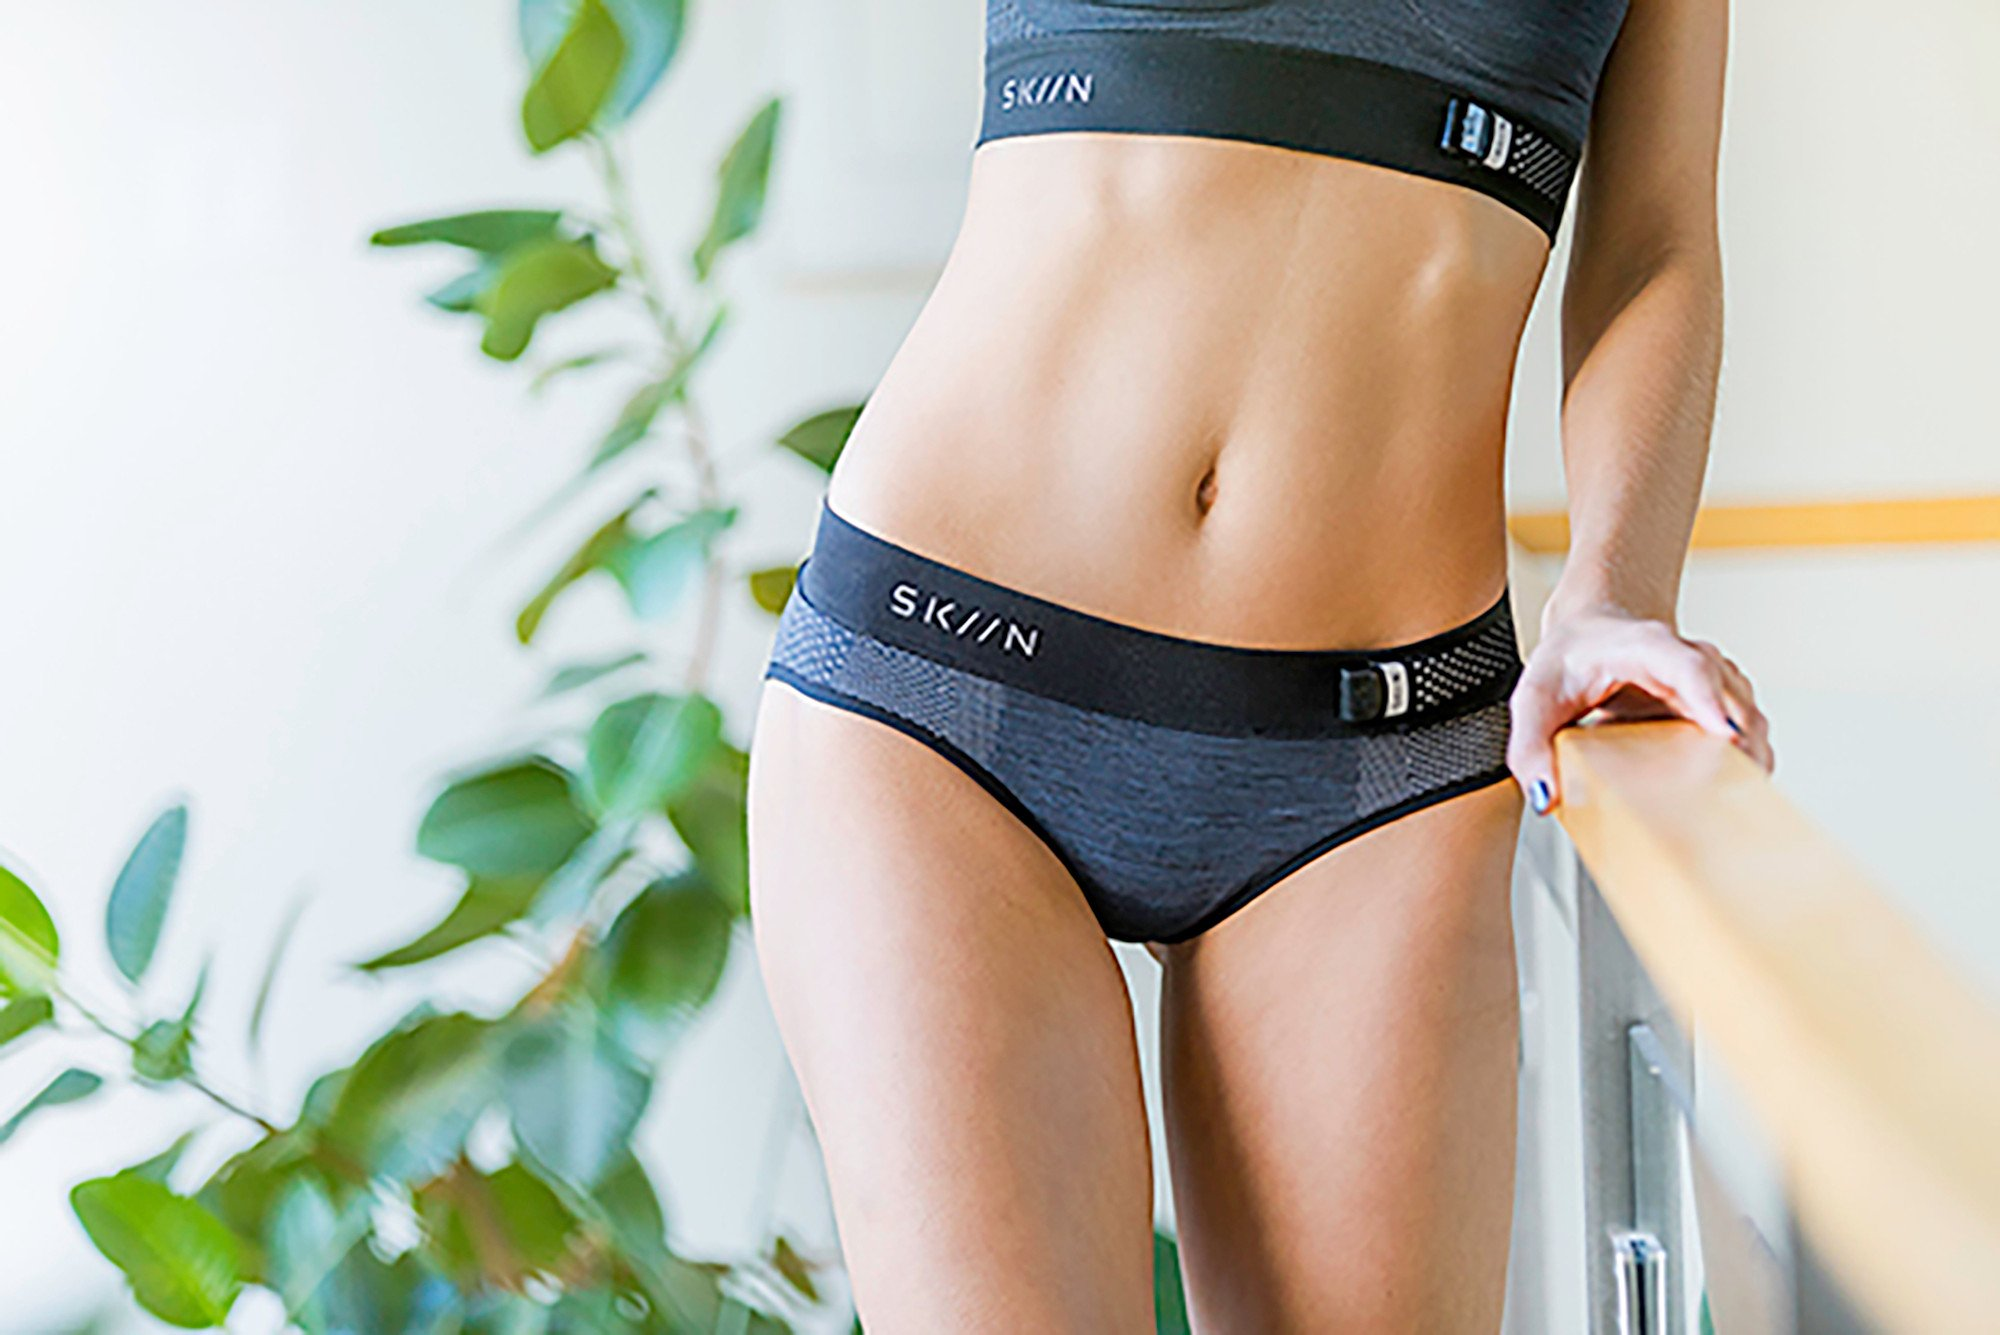 """Smart underwear' is here, and it's ridiculous"